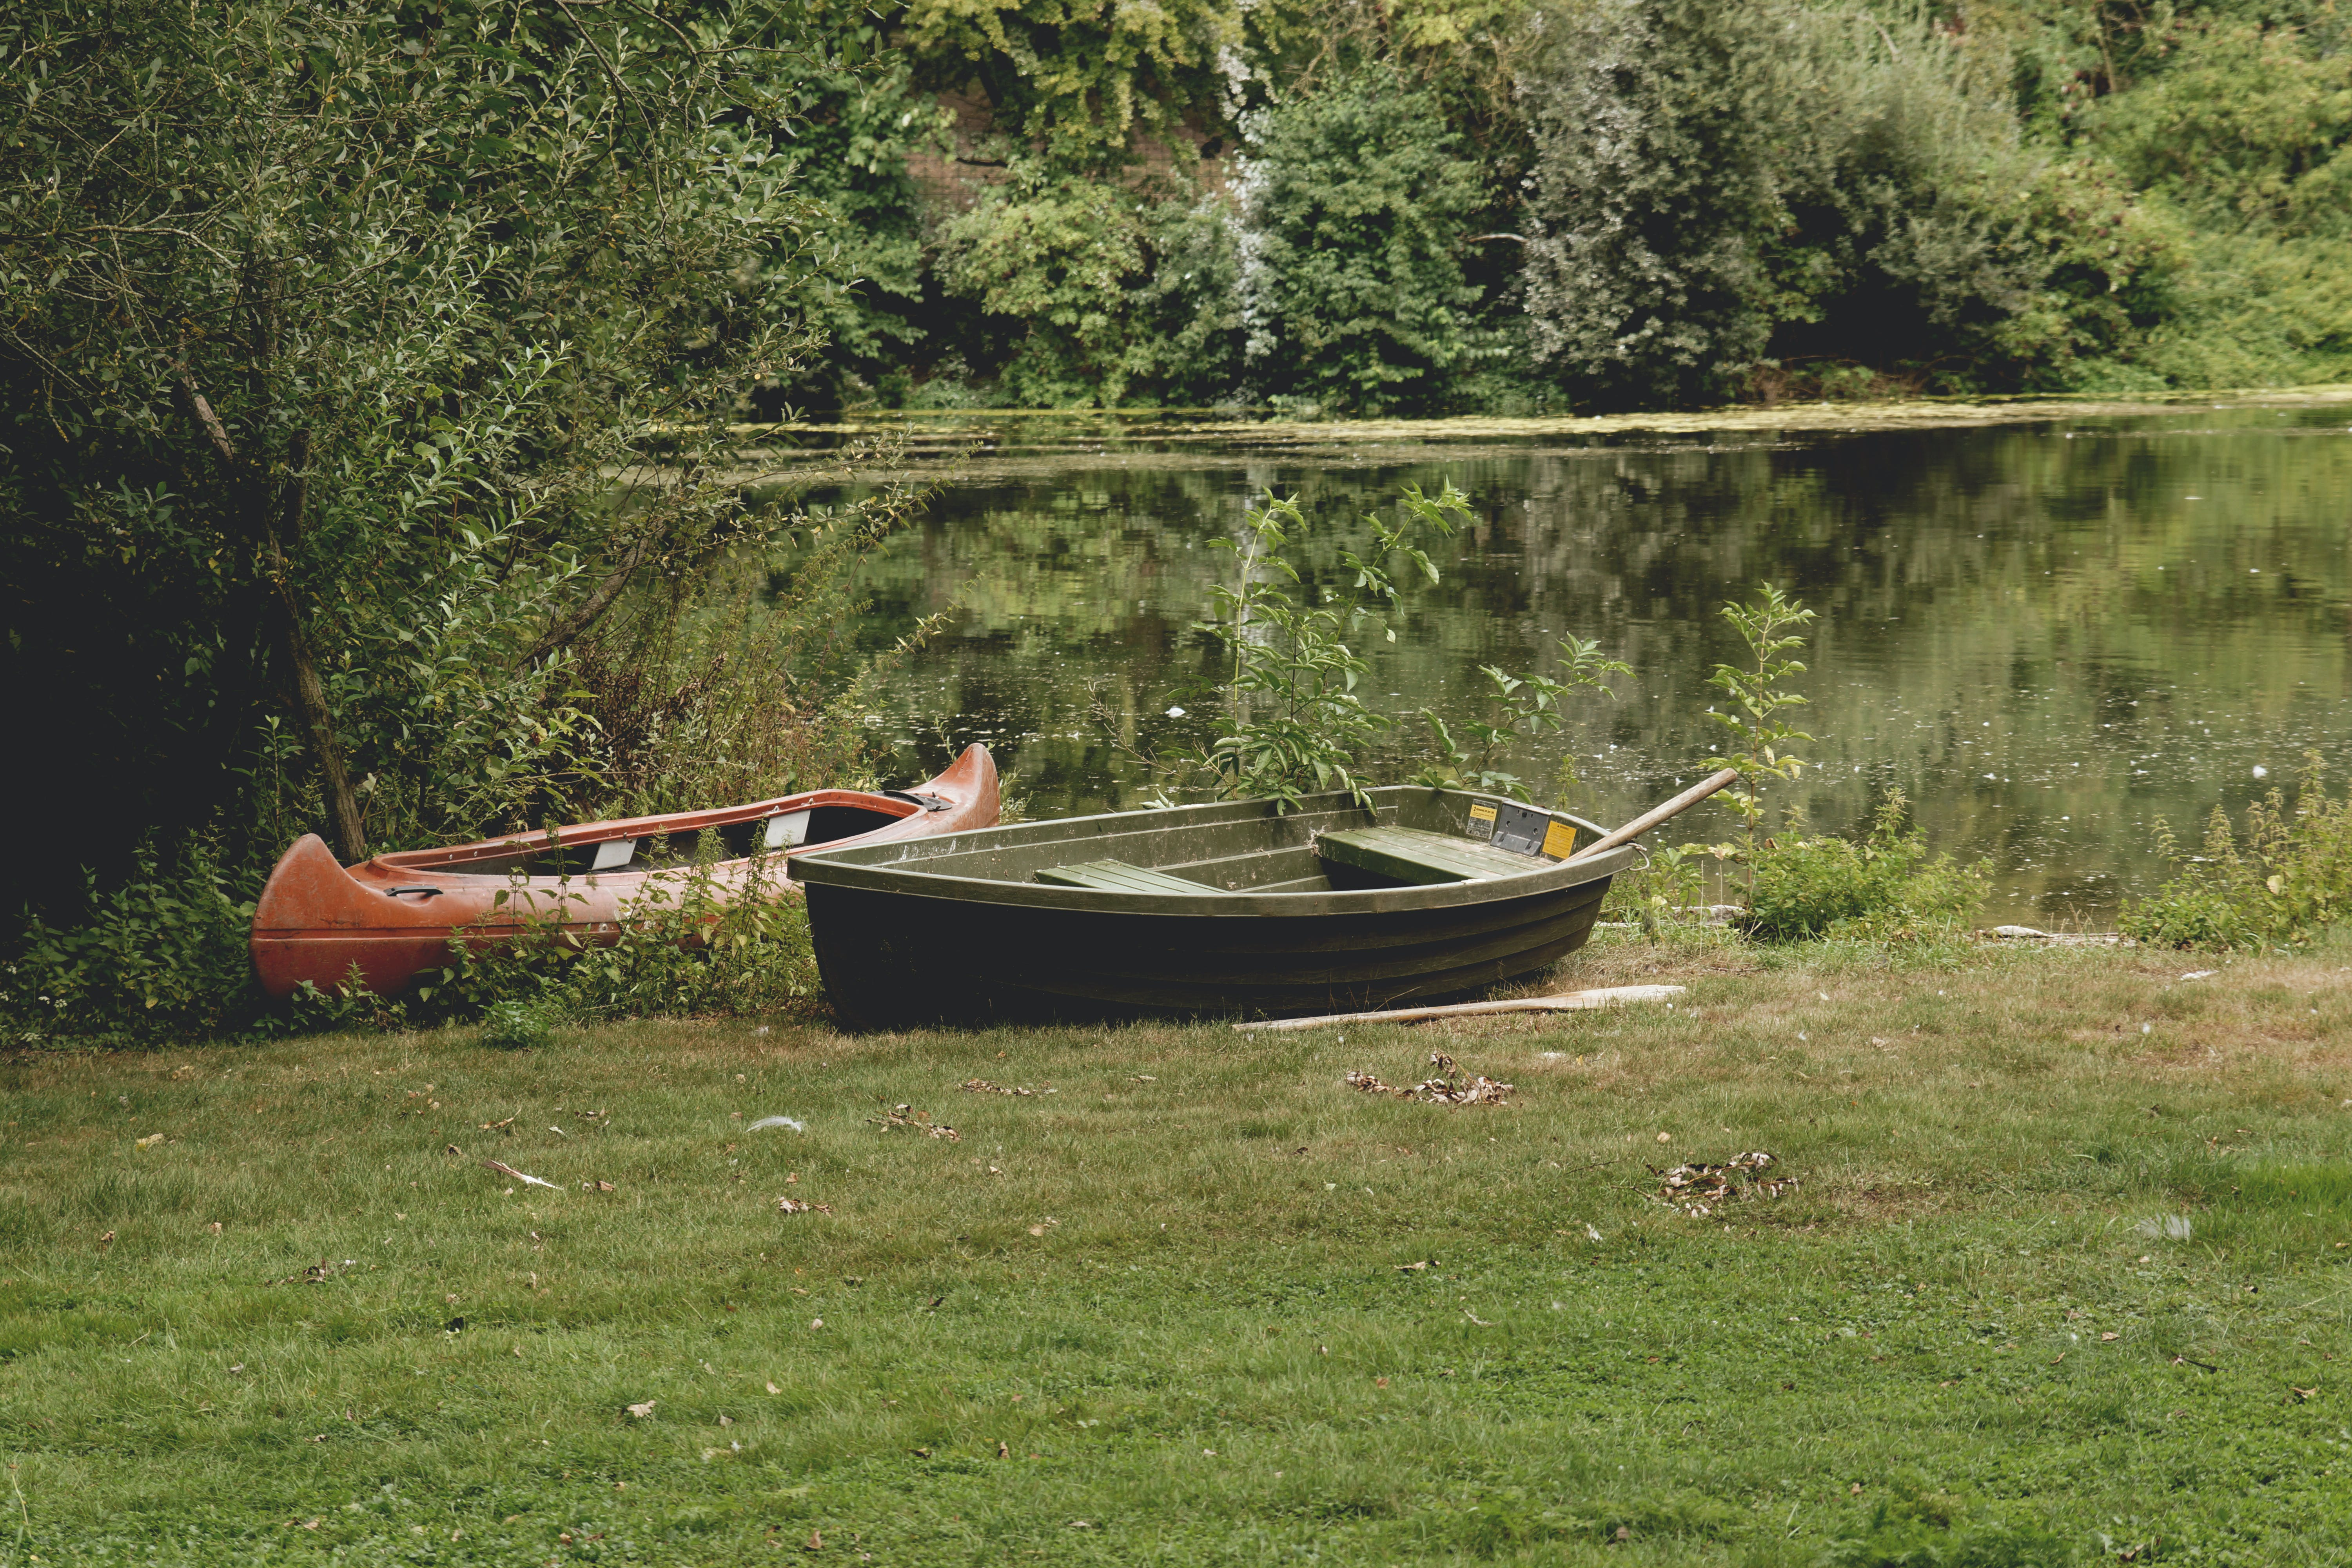 Two Black and Red Assorted-type Boats on Grass